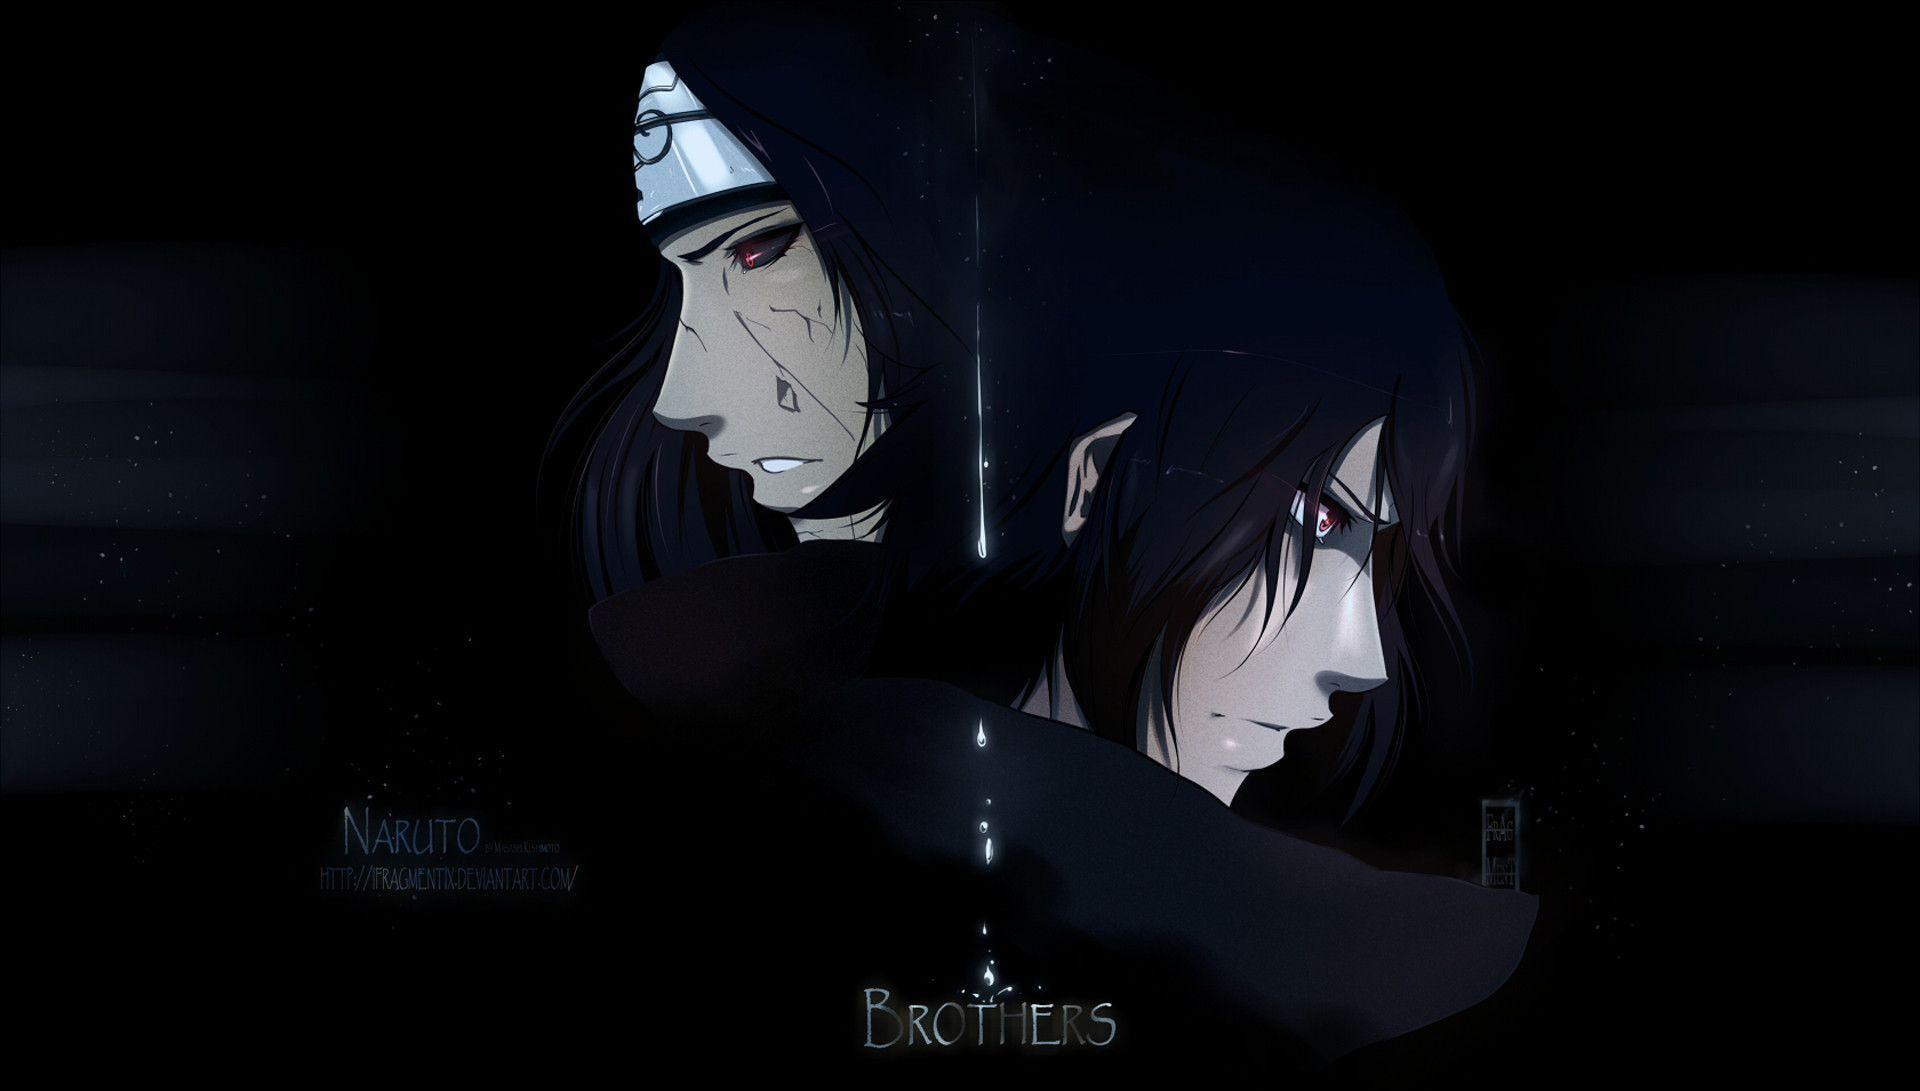 Aesthetic Itachi Desktop Wallpapers Wallpaper Cave